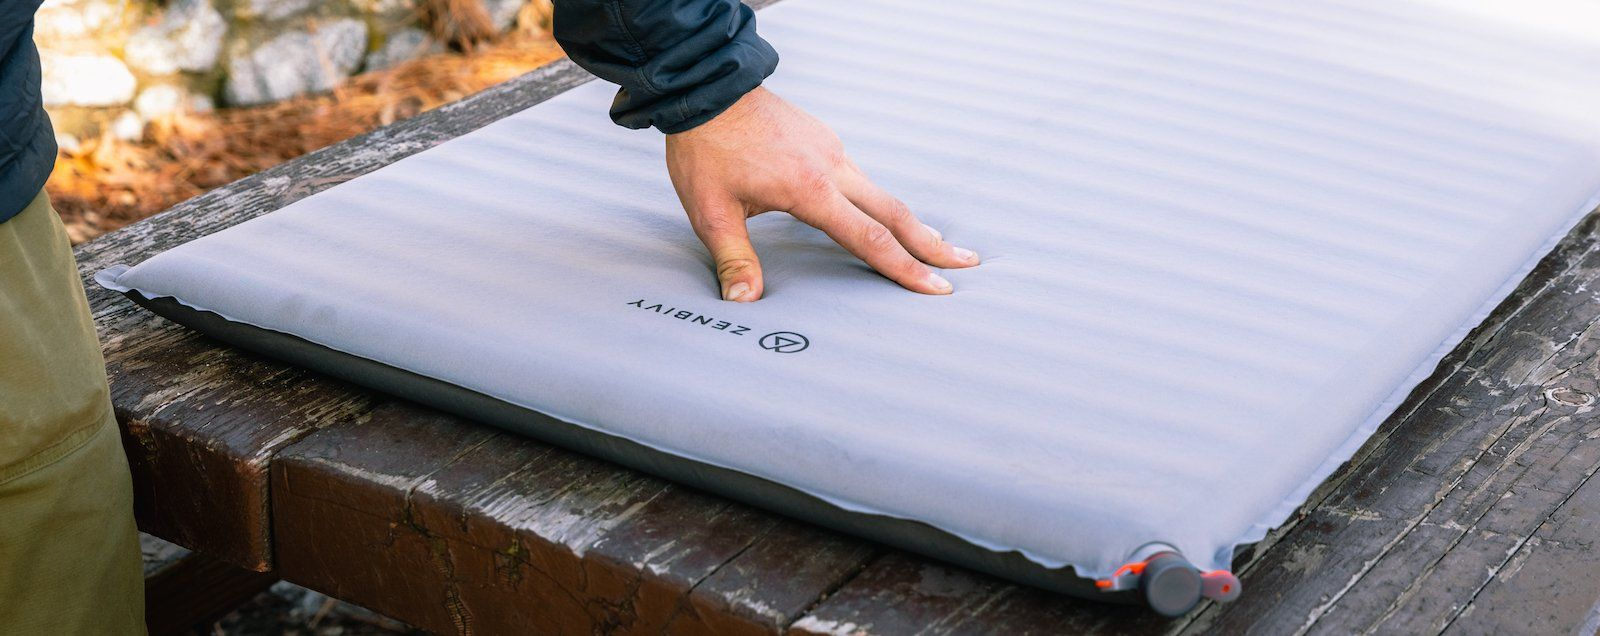 The Zenbivy Flex Mattress is designed for maximum comfort, convenience, and warmth.